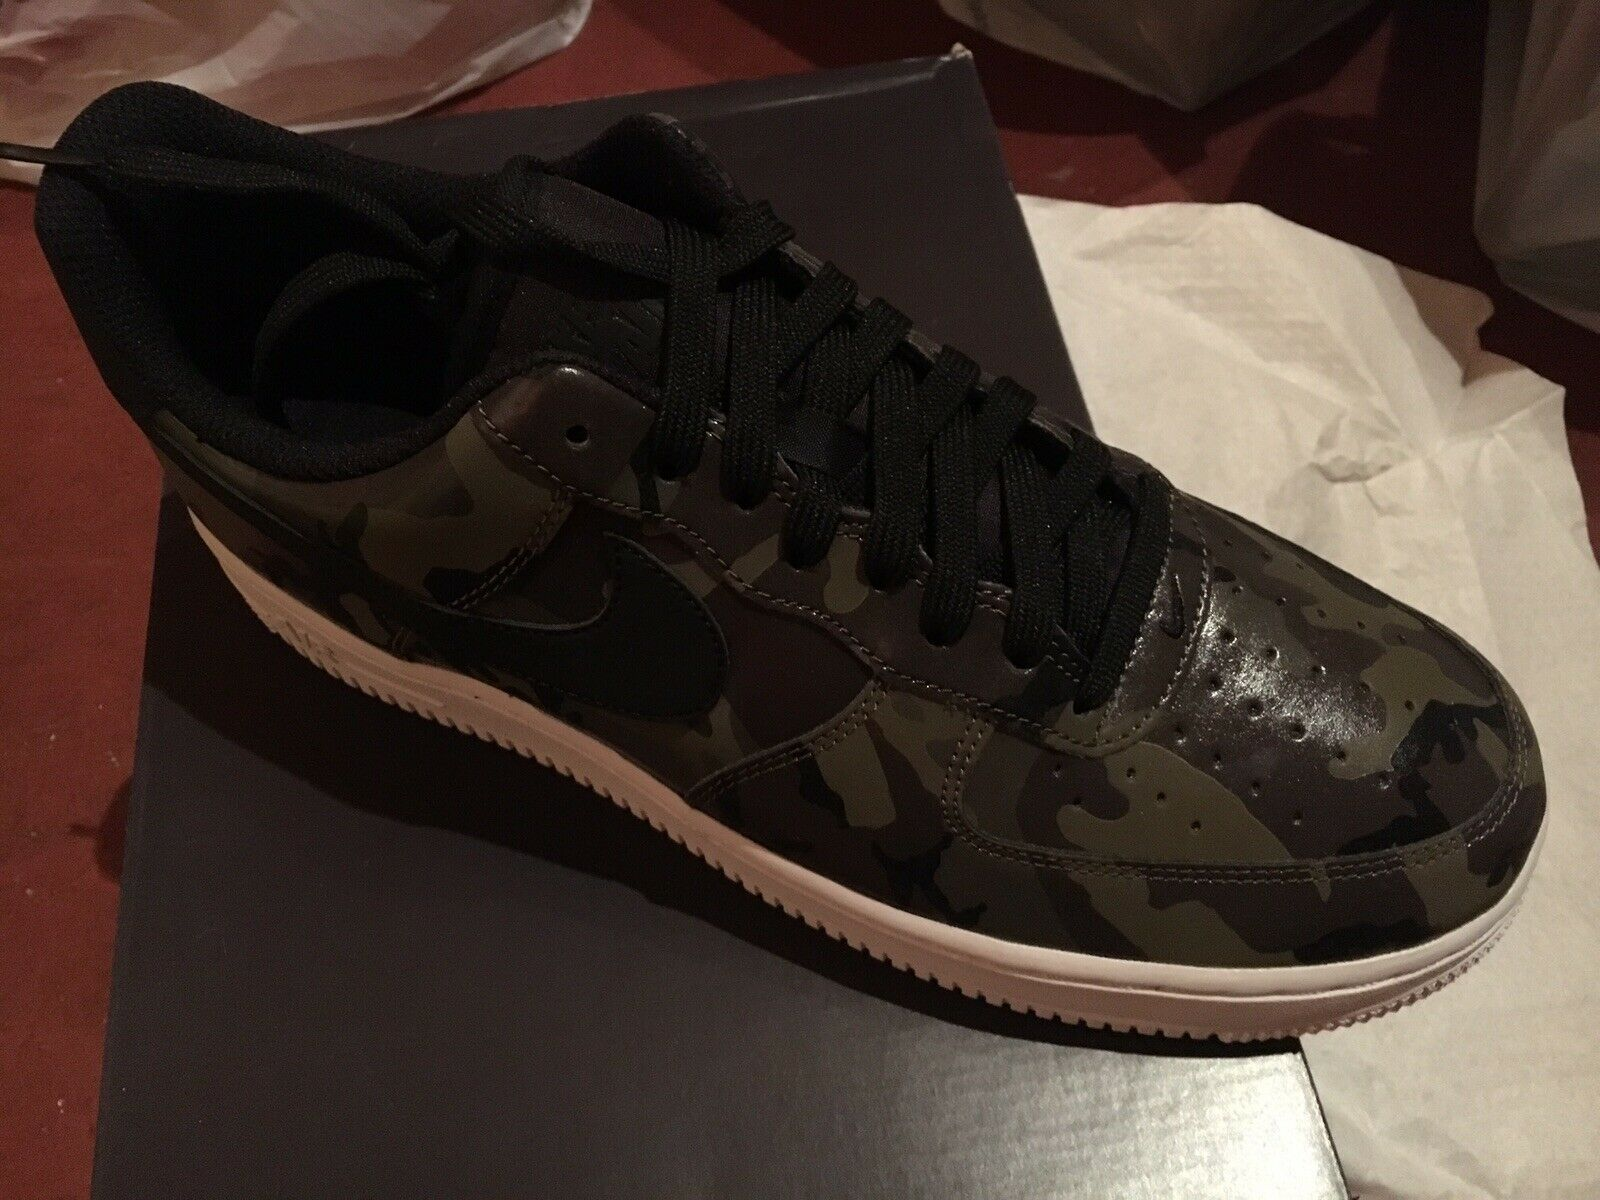 Brand New Air Force 1 '07 Lv8 823511-201 Size 9.5 Medium Olive Black Camo